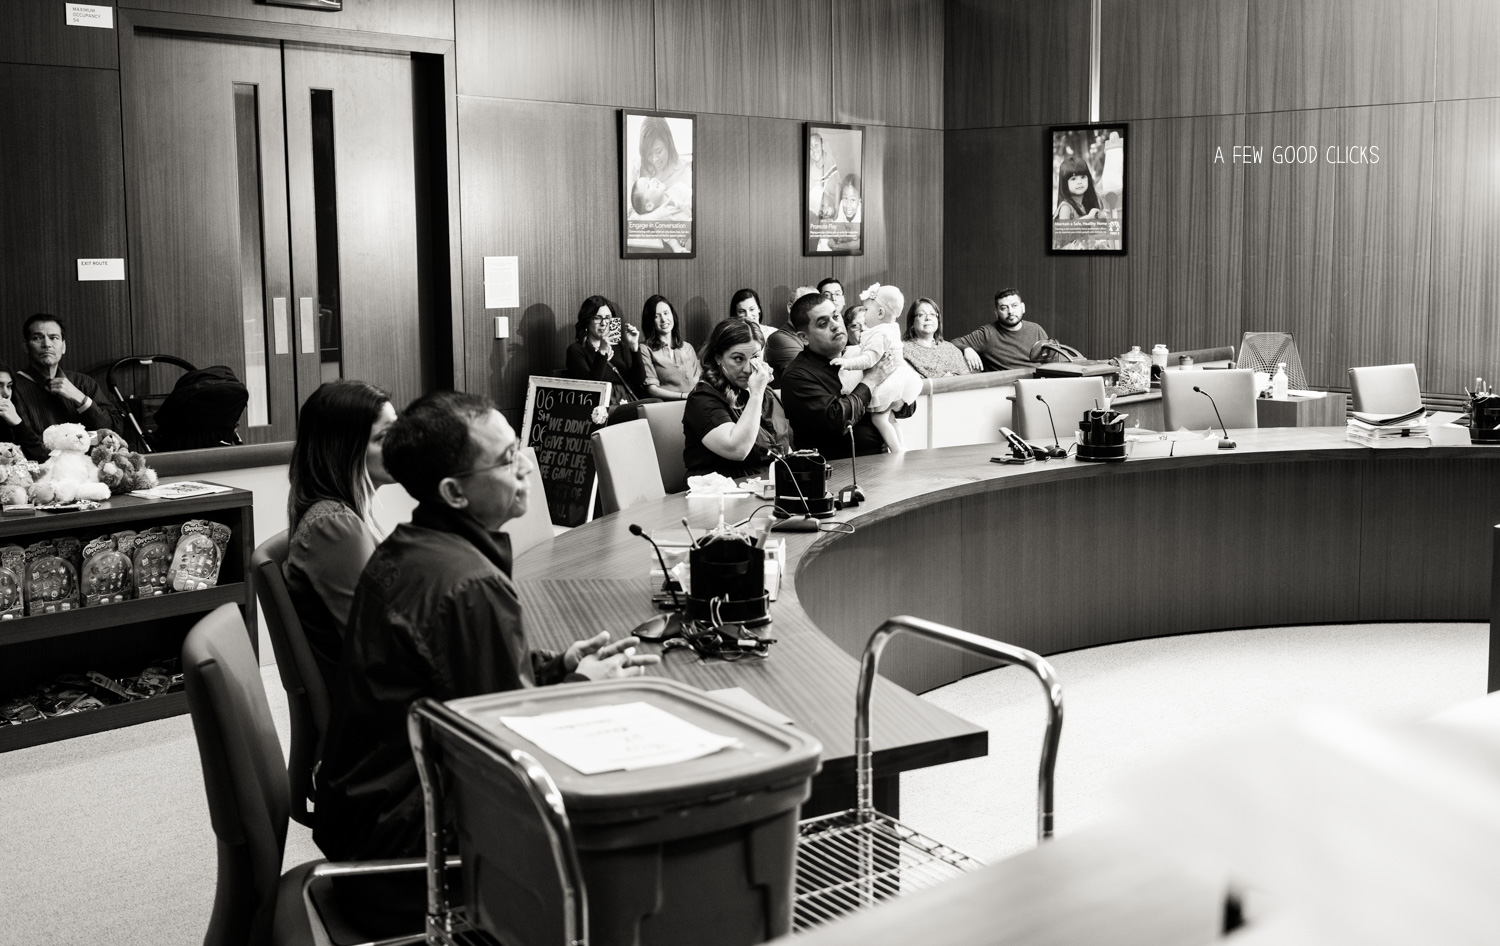 The scene inside the courtroom while the judge process the legal formalities